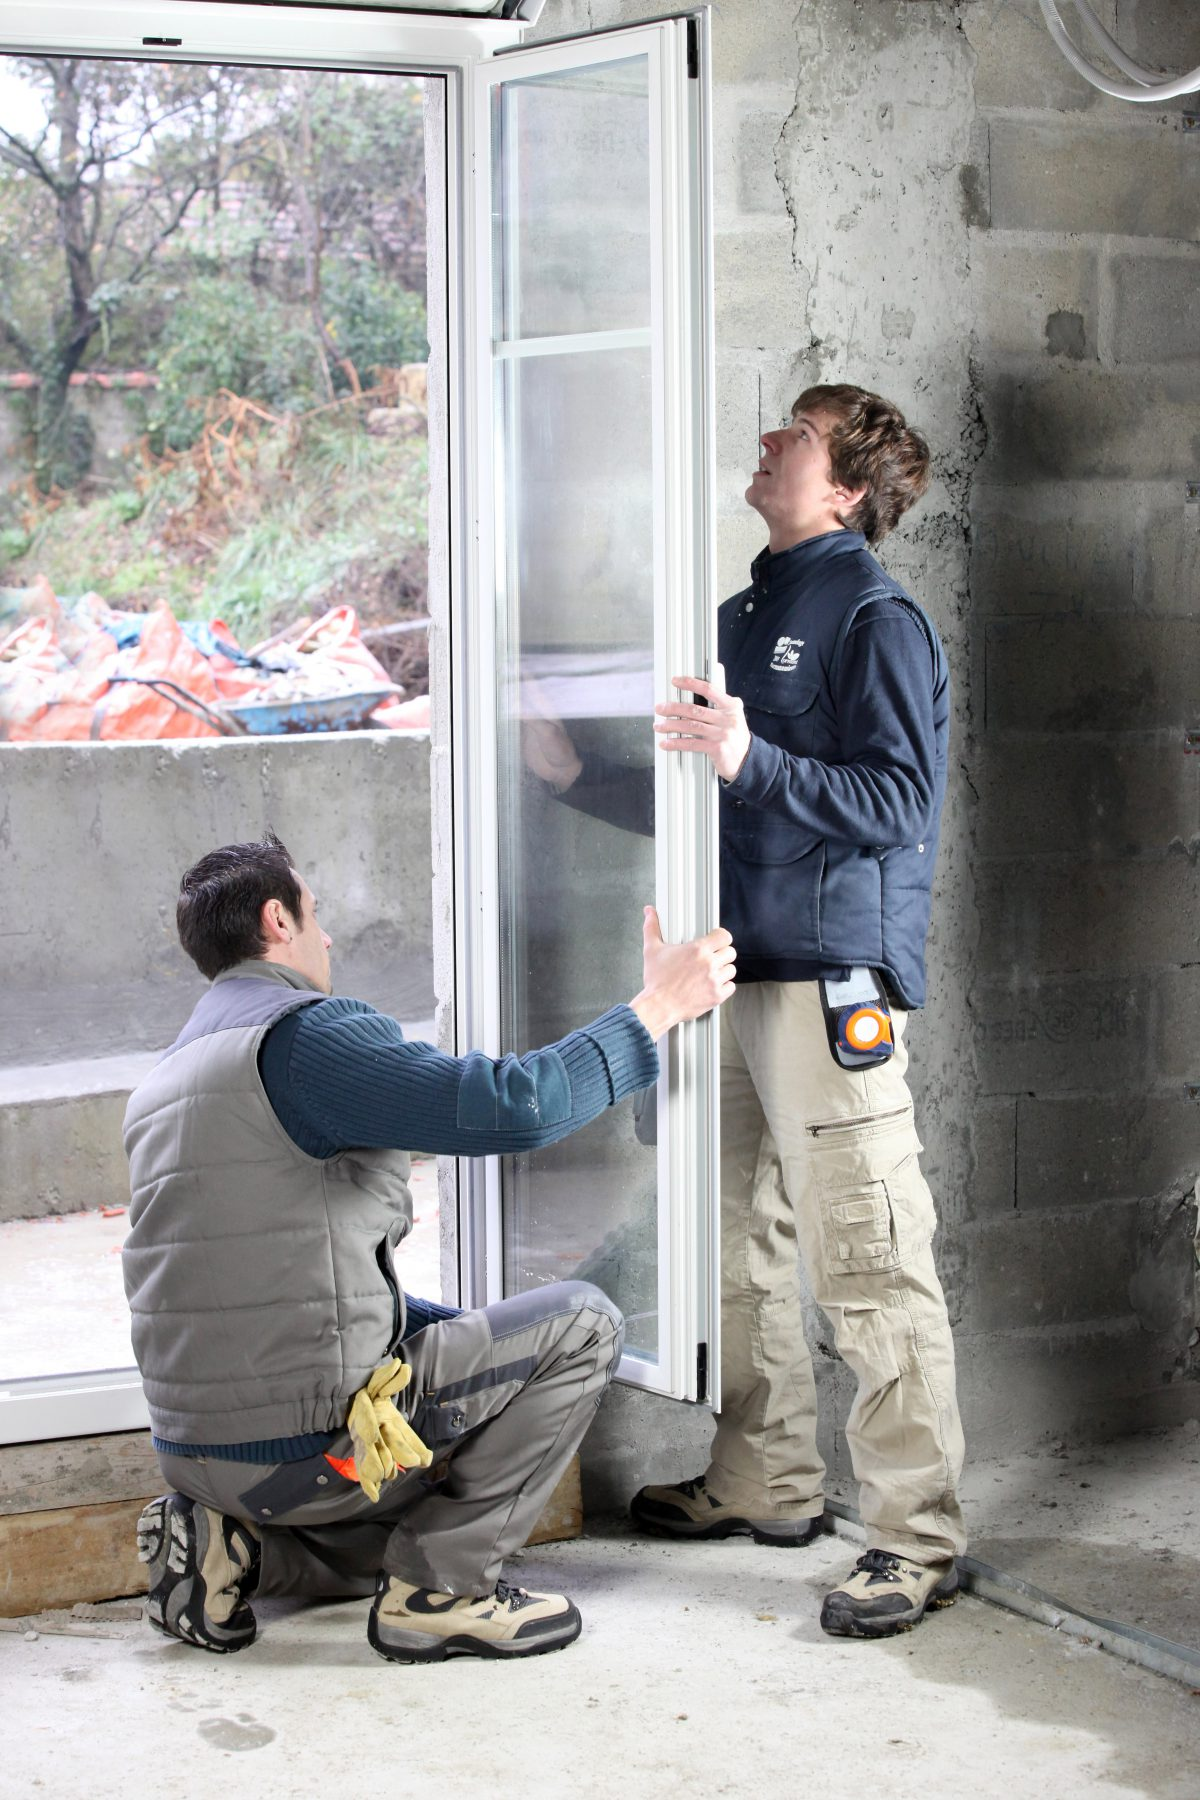 installation coordination and support for proper and worry free installation